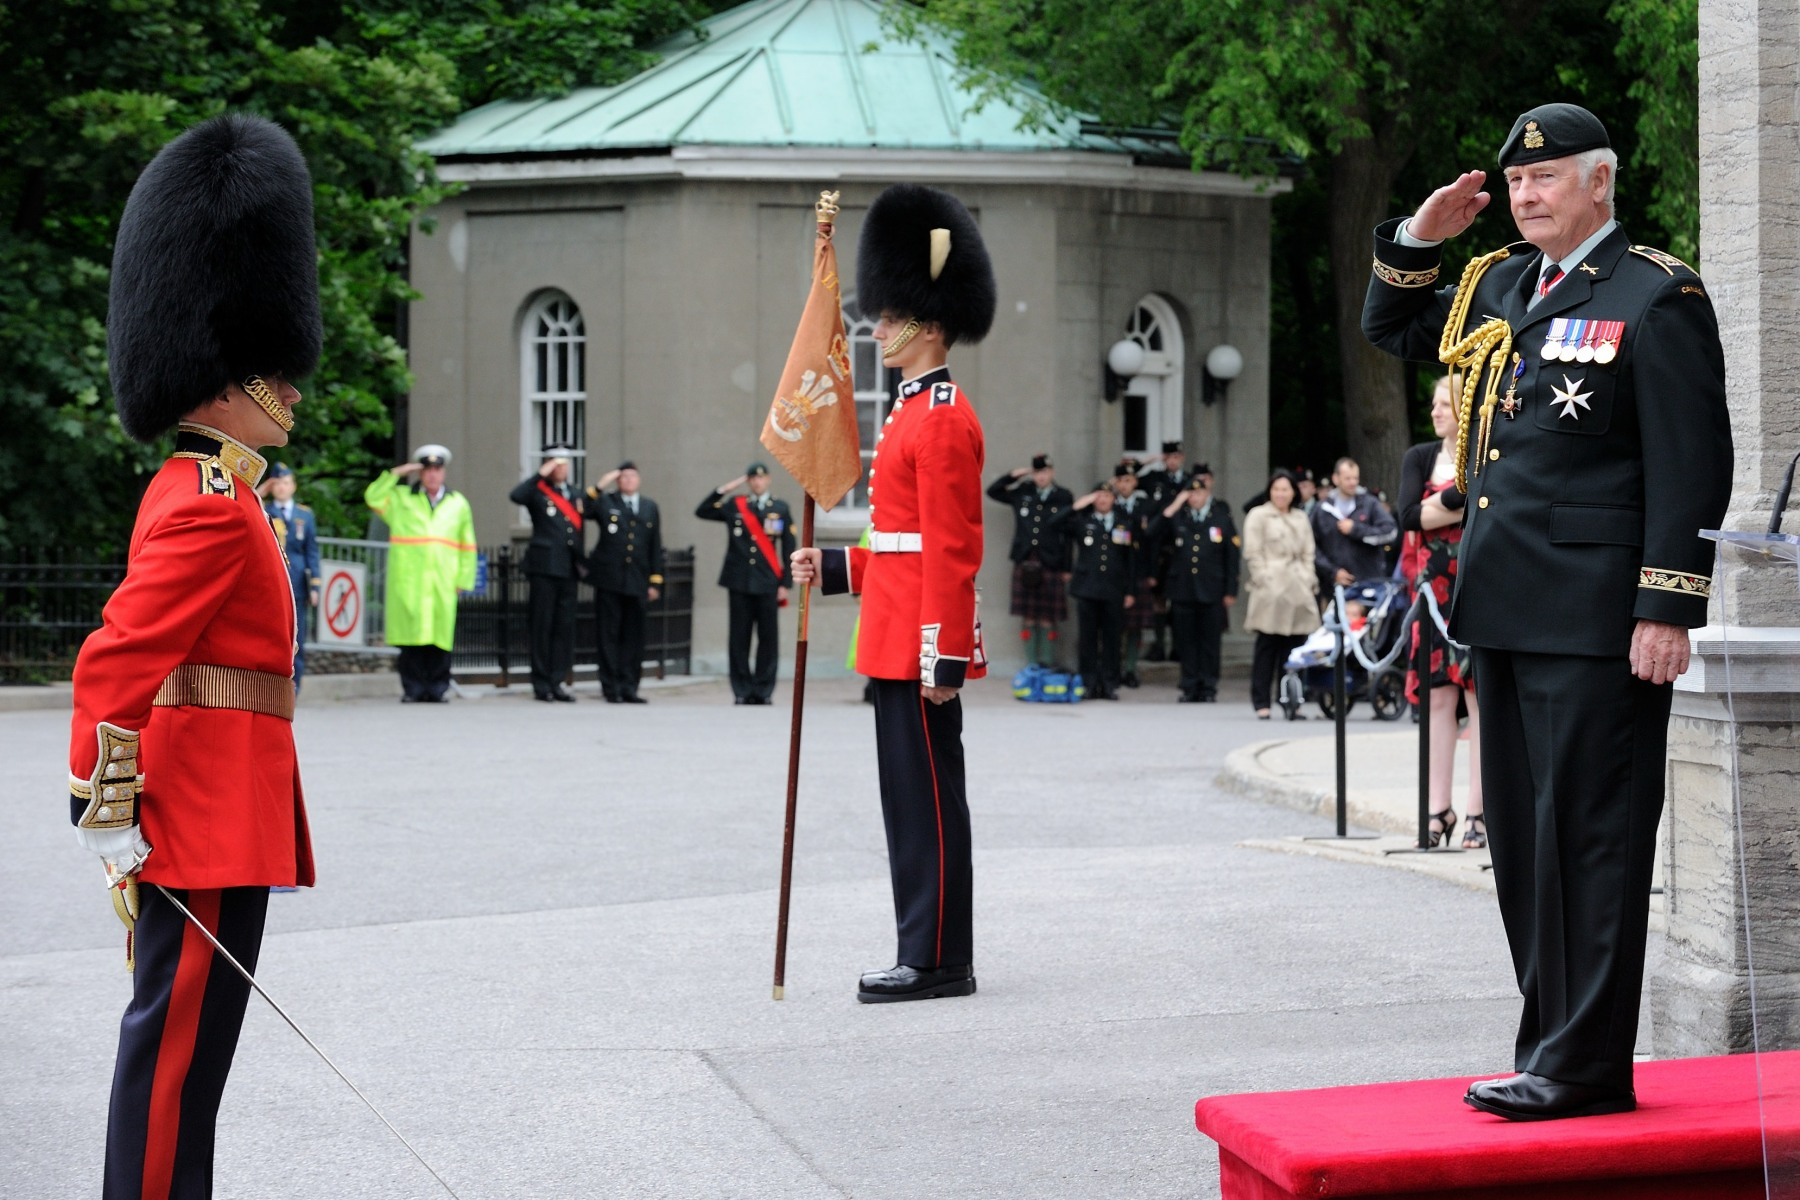 His Excellency the Right Honourable David Johnston, Governor General and Commander-in-Chief of Canada, received the Viceregal salute.